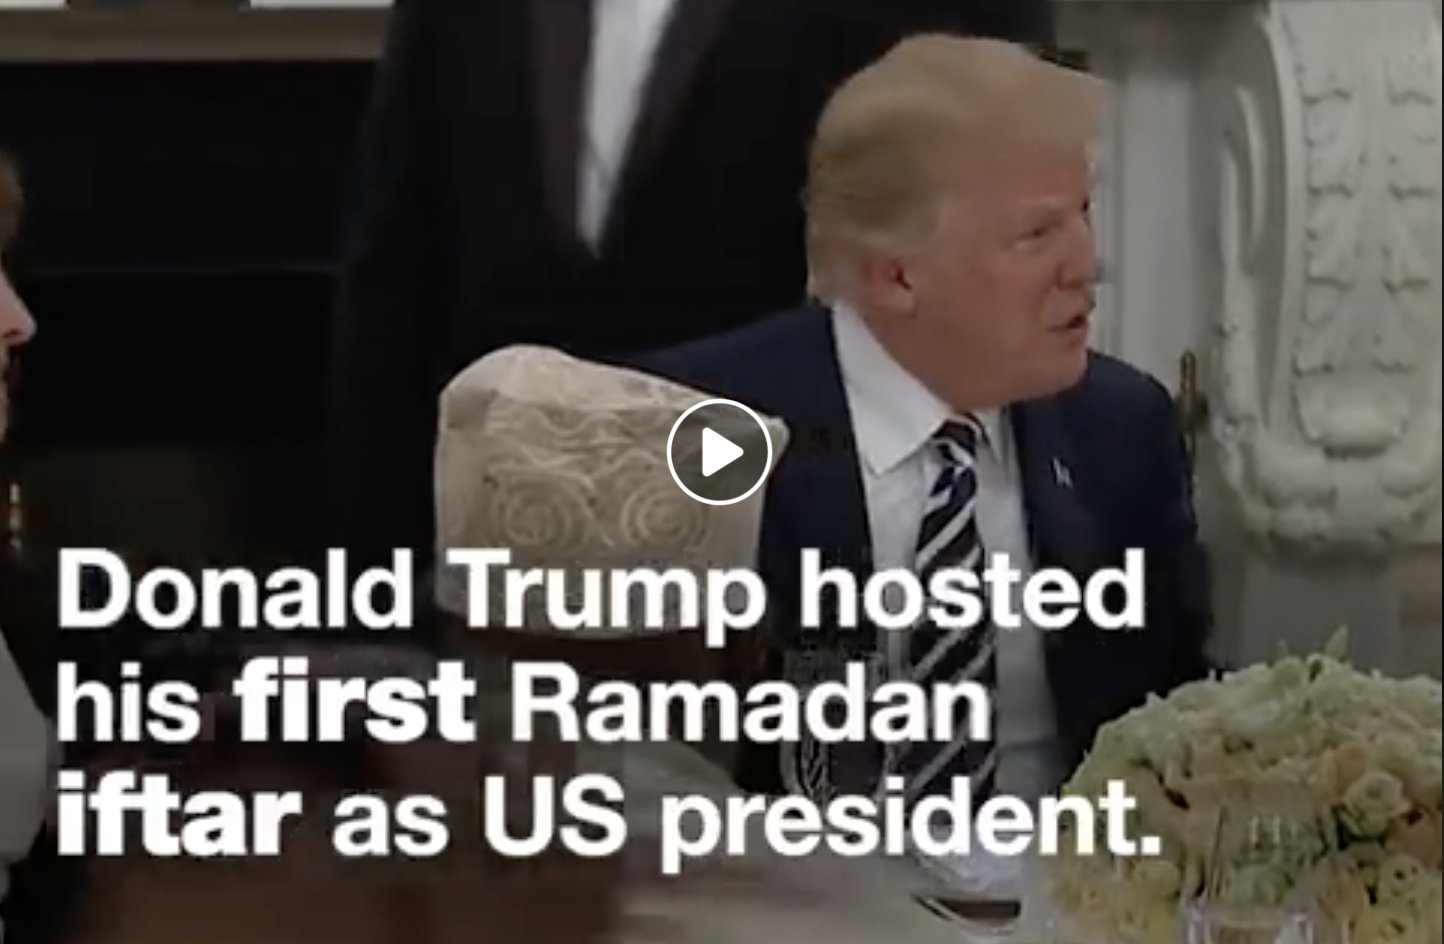 Trump lambasts Muslims during campaign. Kisses their REARS as President by inviting them to the WHITE HOUSE for Ramadan Iftar!